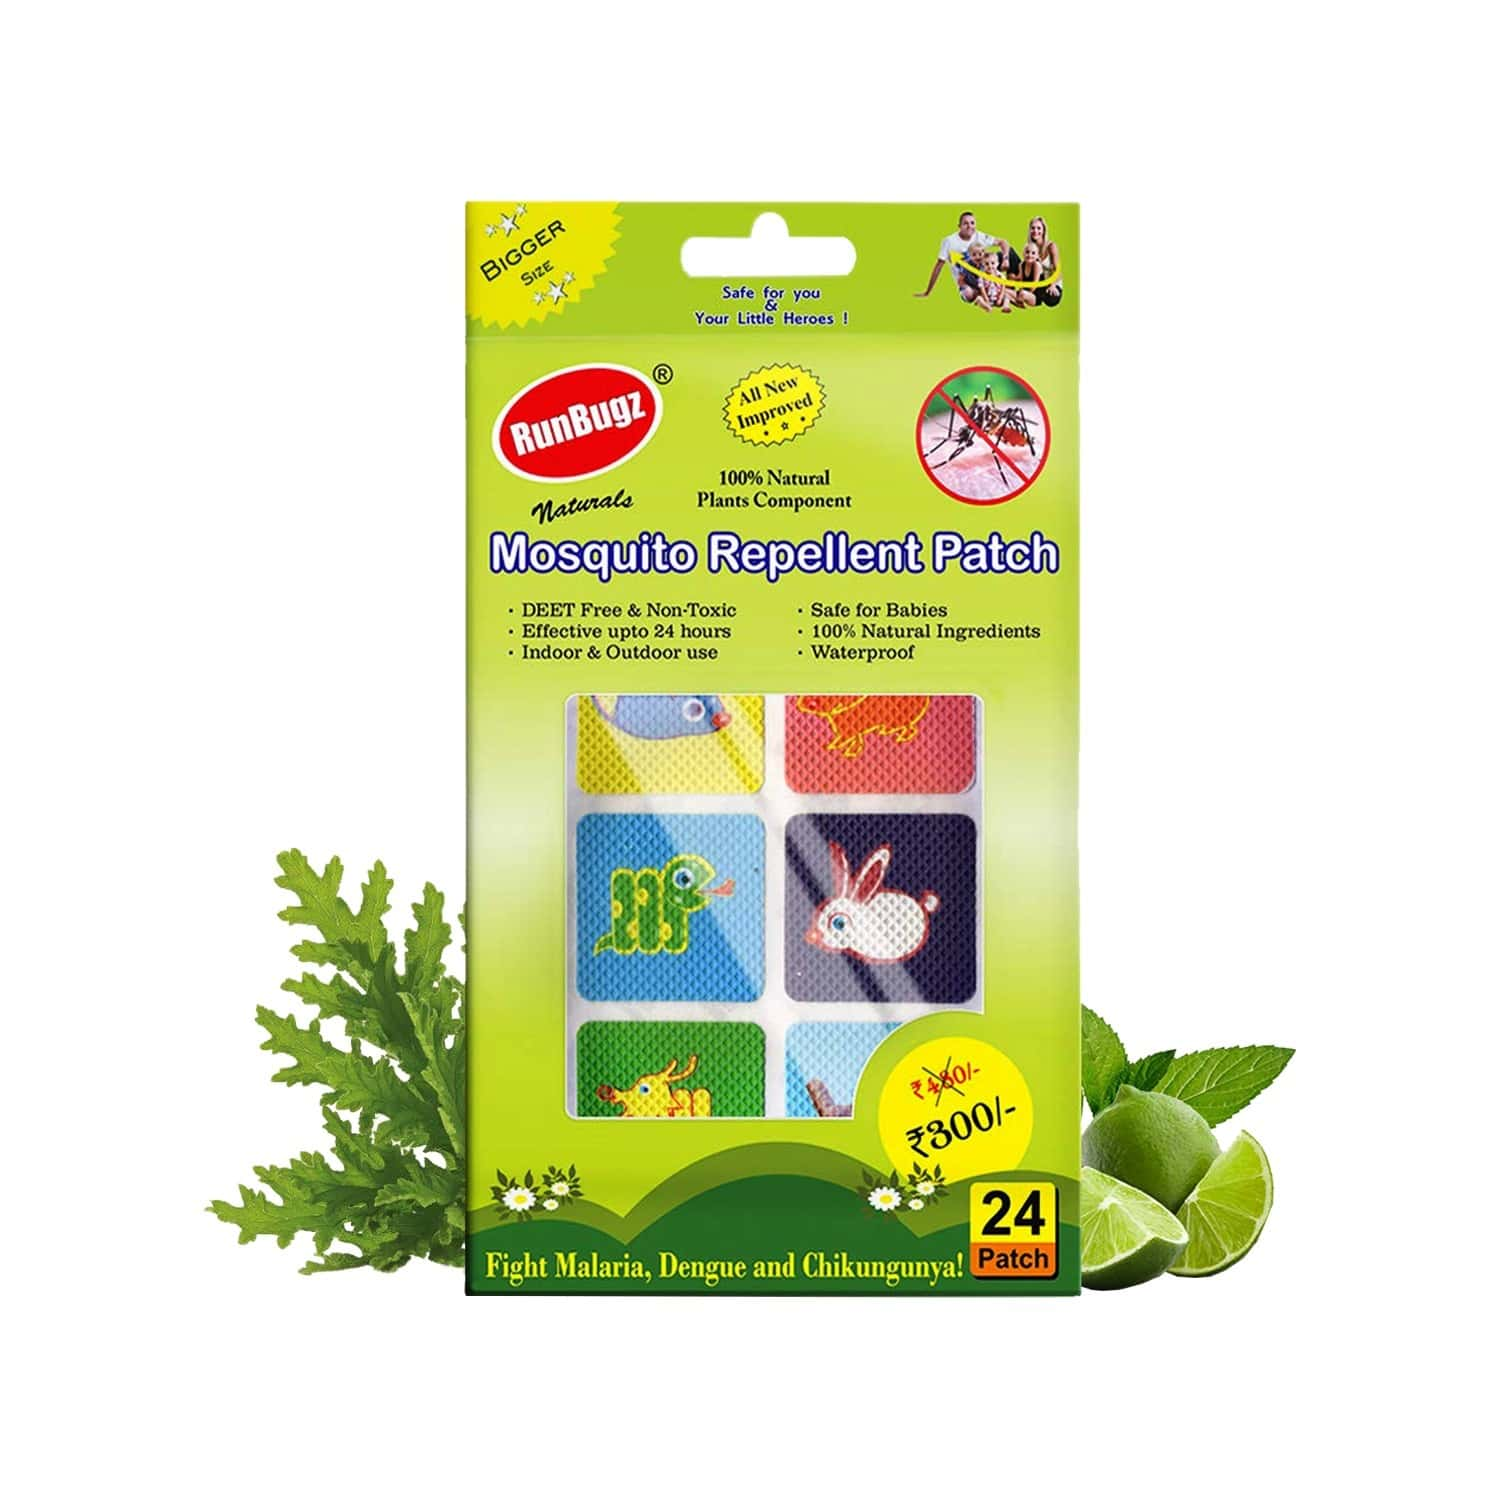 Runbugz Mosquito Repellent Animal Patches For Babies, 24 Patches